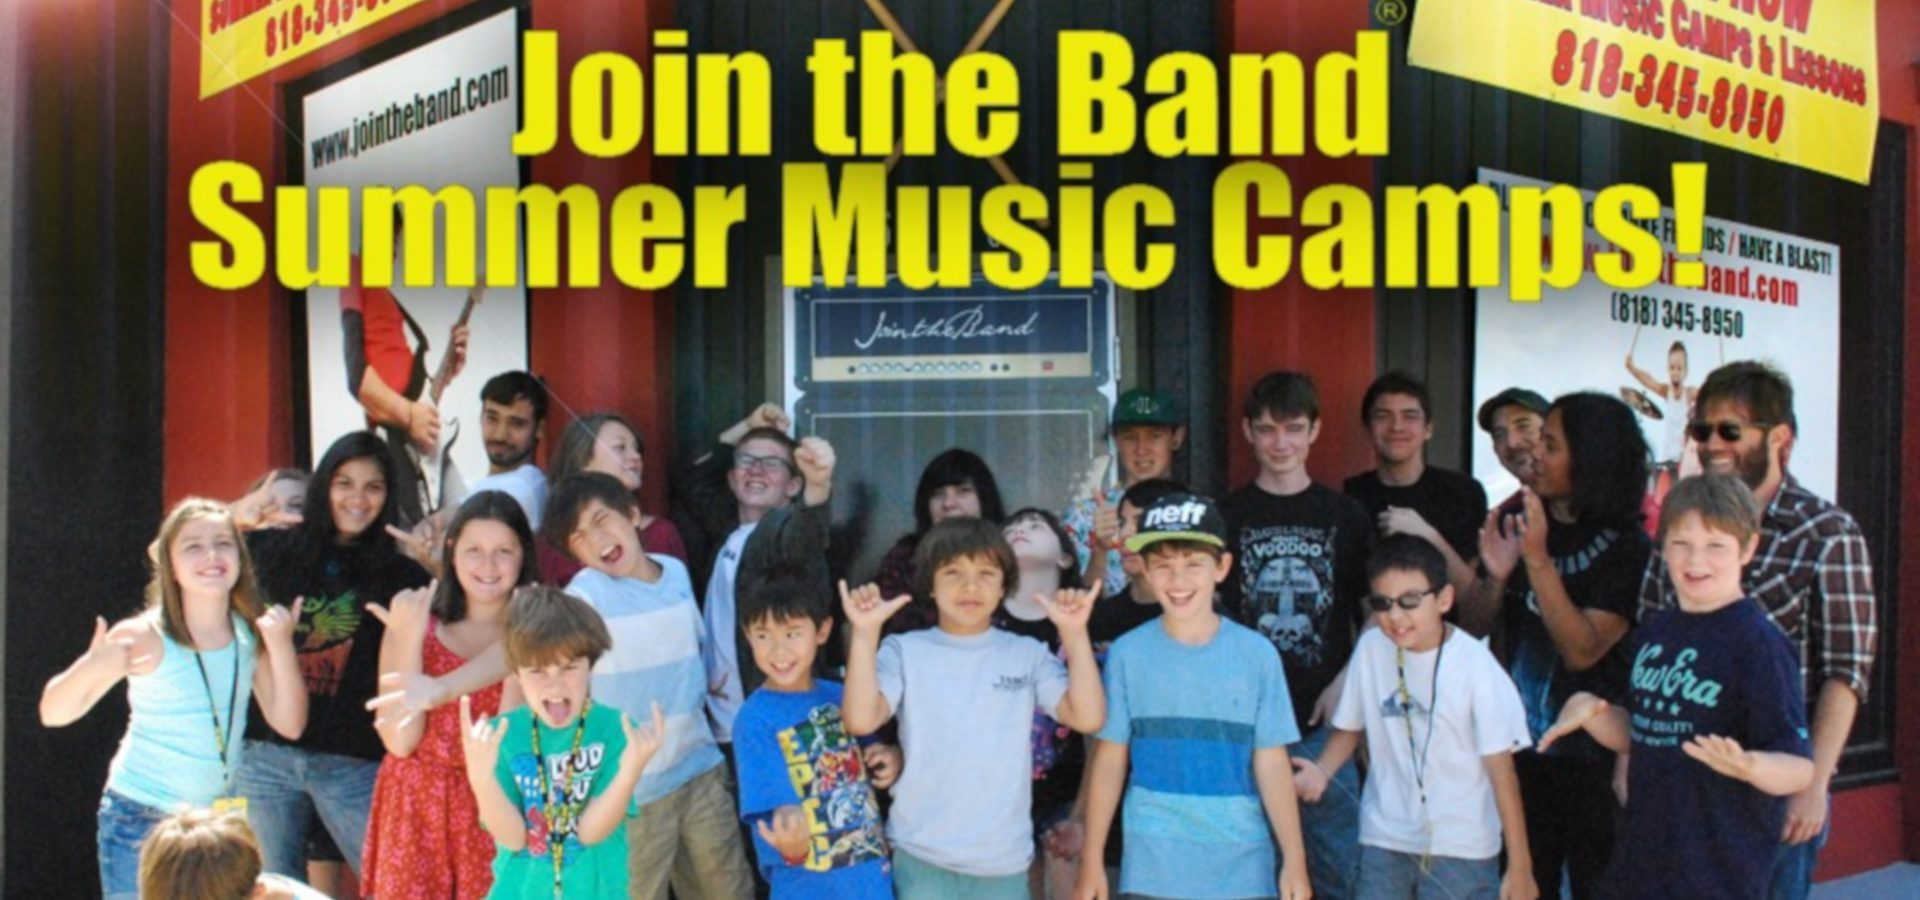 Summer Music Camps - Middle School - Sherman Oaks, Los Angeles - Join The Band